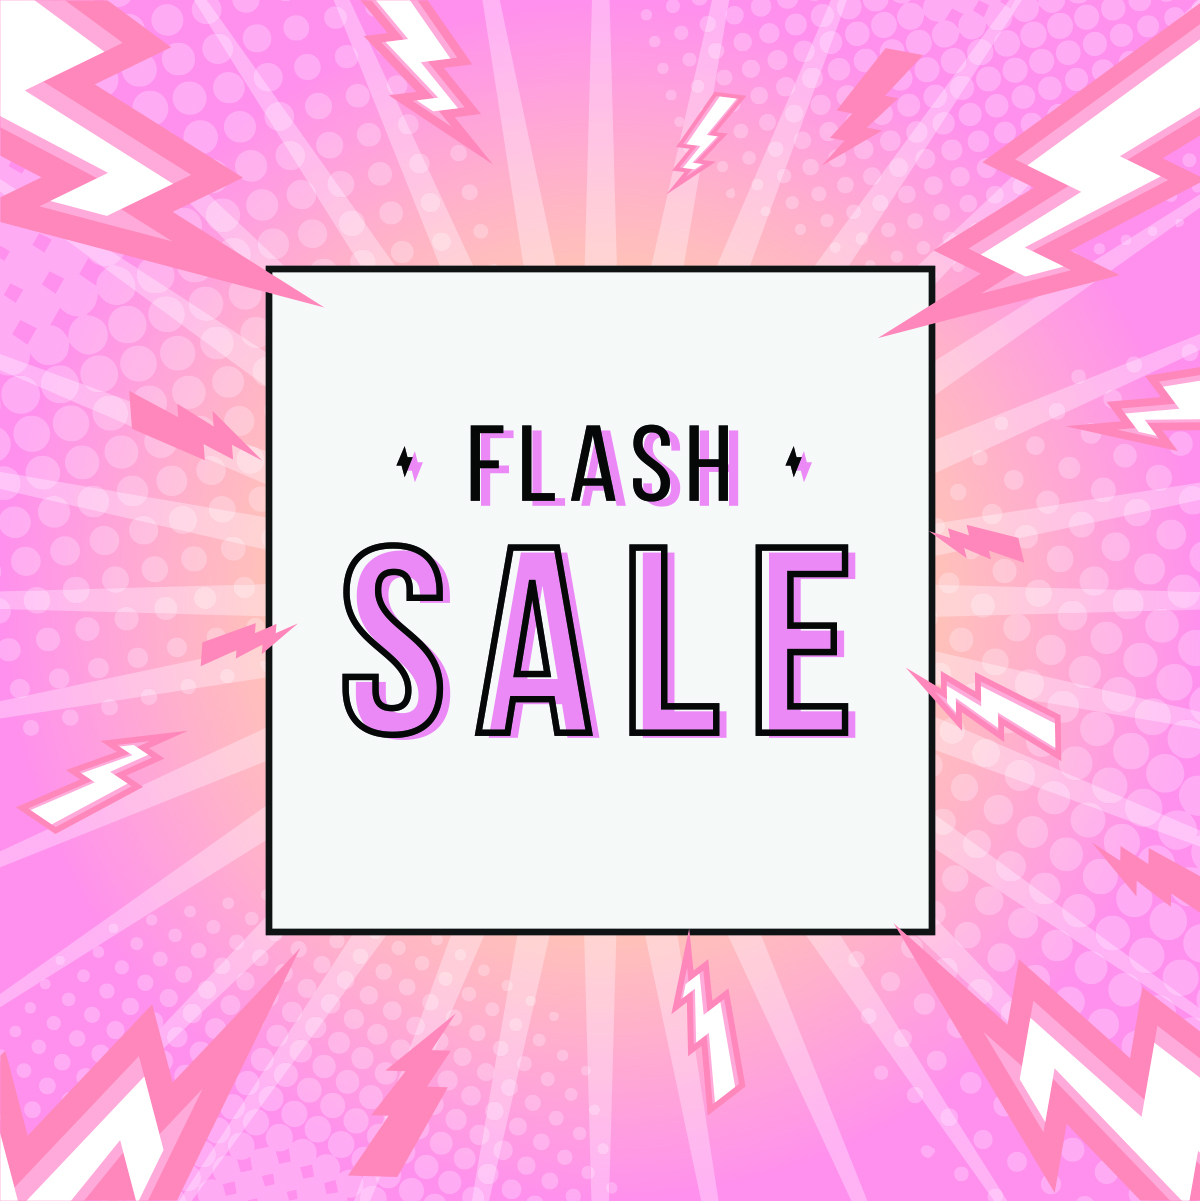 FlashSale1.jpg